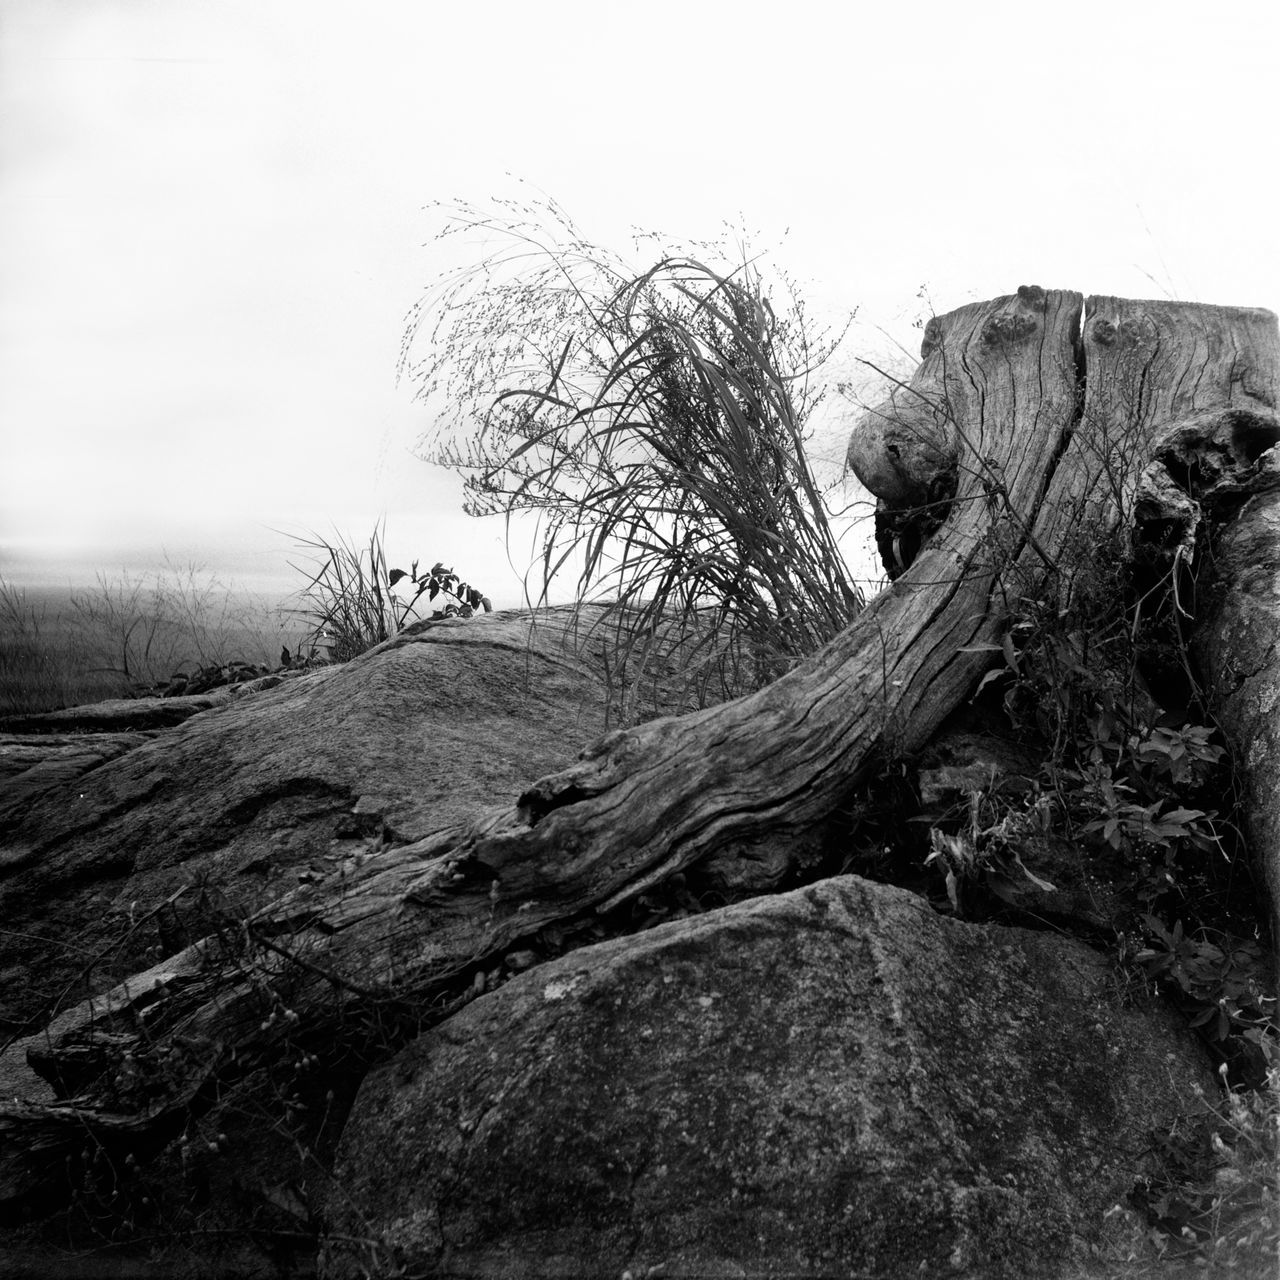 Abandoned Analogue Photography Bare Tree Beach Beauty In Nature Black And White Clear Sky Close-up Day Dead Tree Film Photography Hasselblad Nature No People Outdoors Rock - Object Rock Formation Shenandoah National Park Sky Spooky Stump Textured  Tranquility Tree